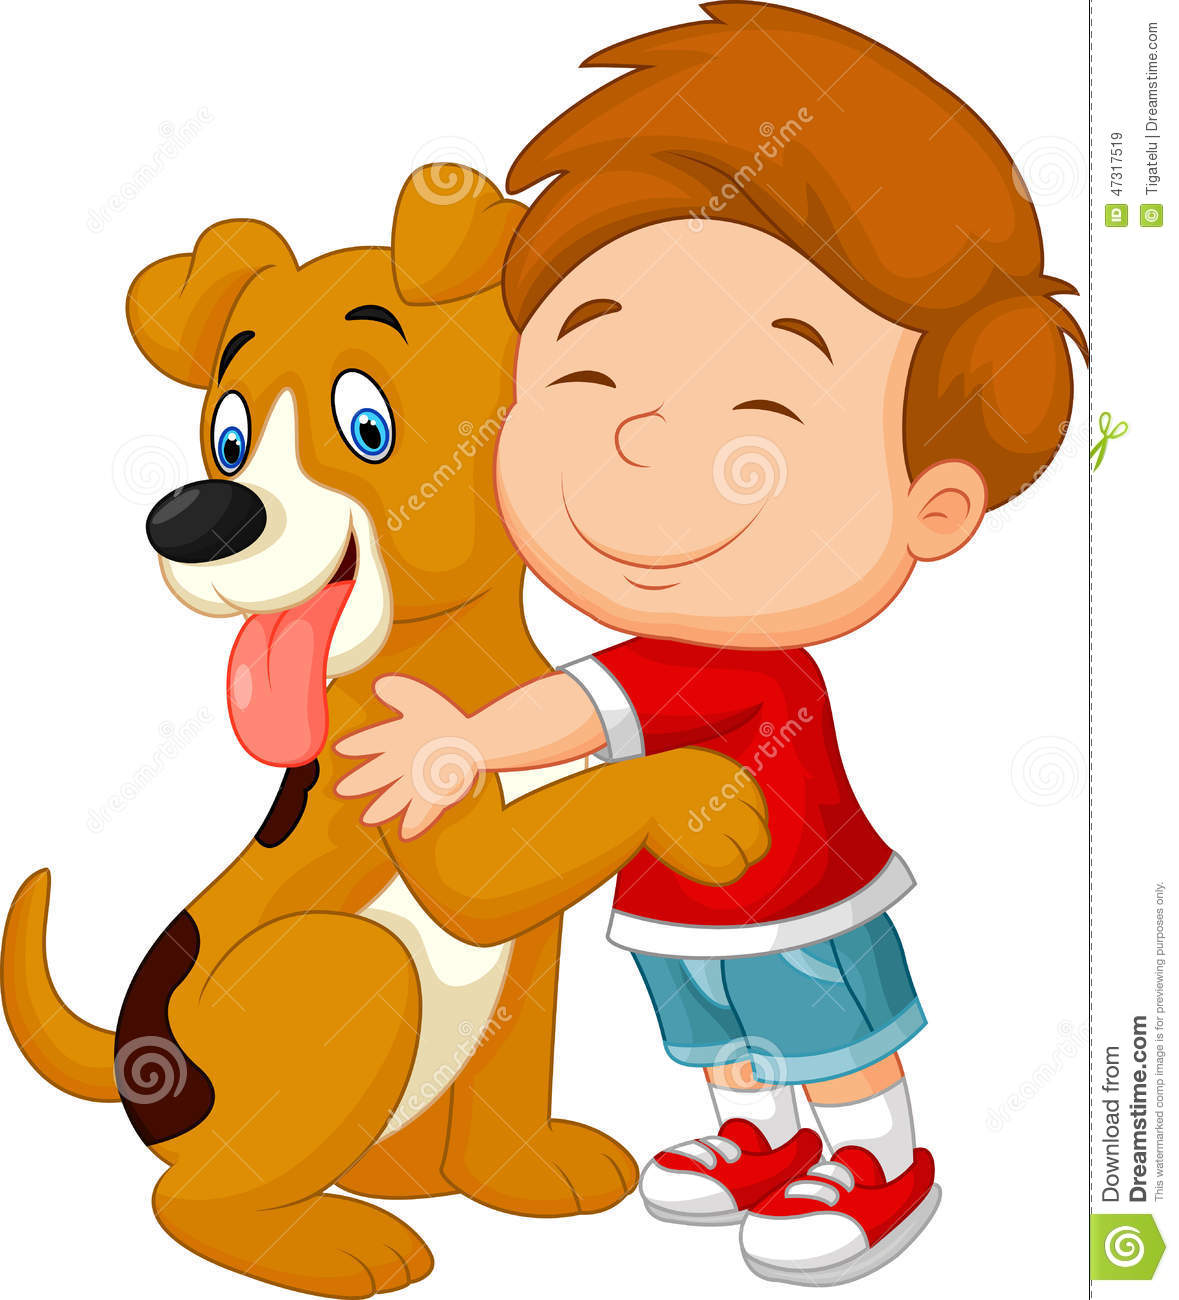 Hugging clipart. Little boy